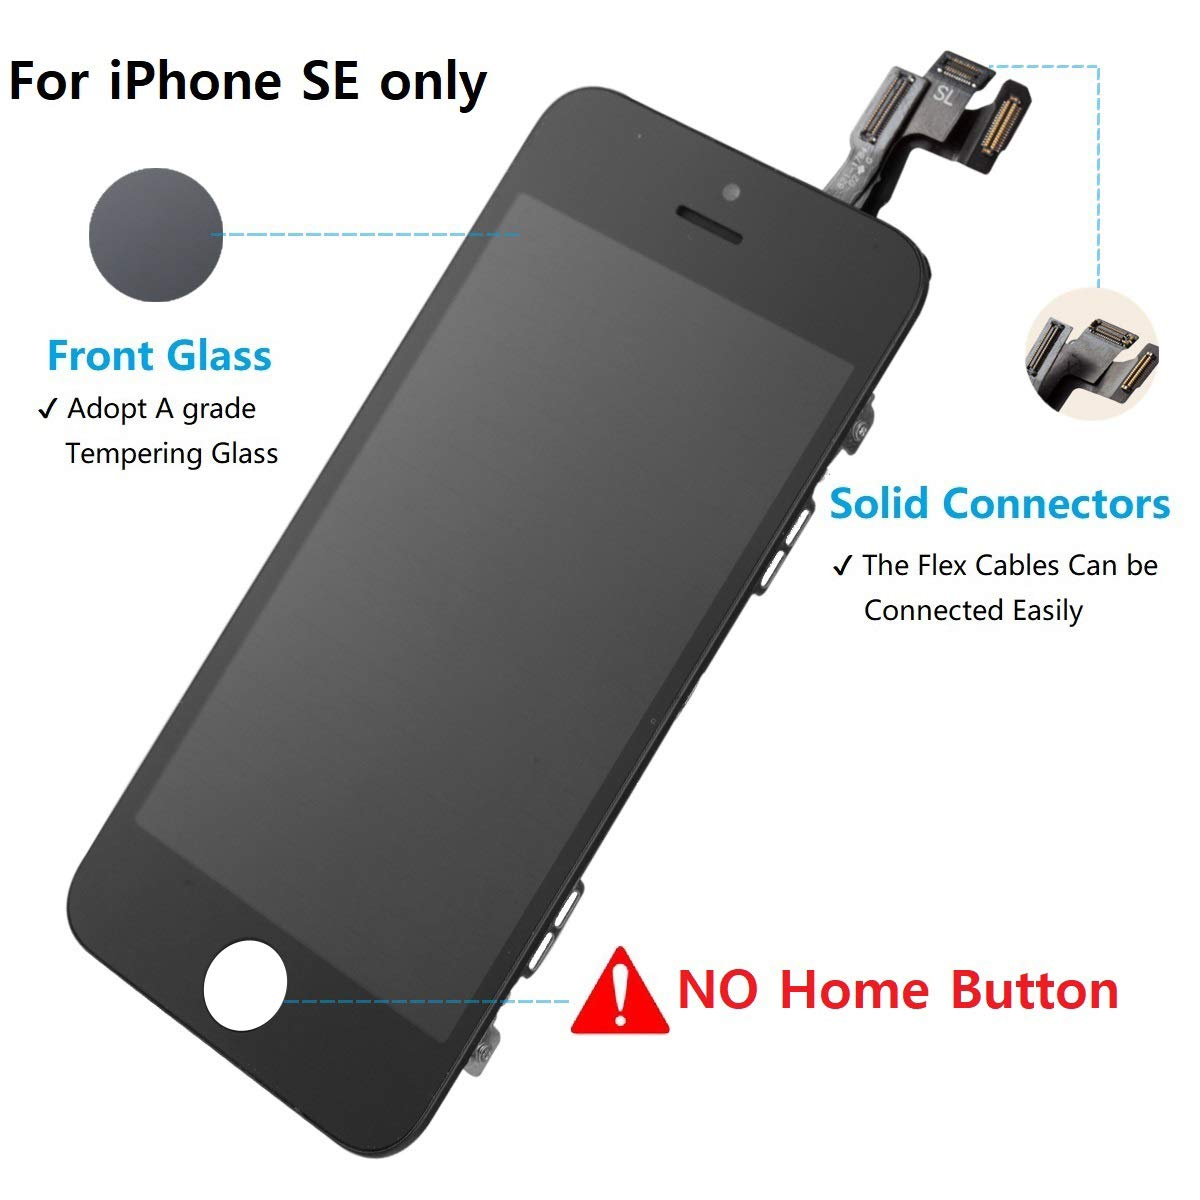 4.0 Drscreen LCD Display Touch Screen Digitizer Compatible with iPhone 5SE for Model A1723,A1662,A1724 Pre-Assembly with Front Camera and Ear Speaker for iPhone SE Screen Replacement Black